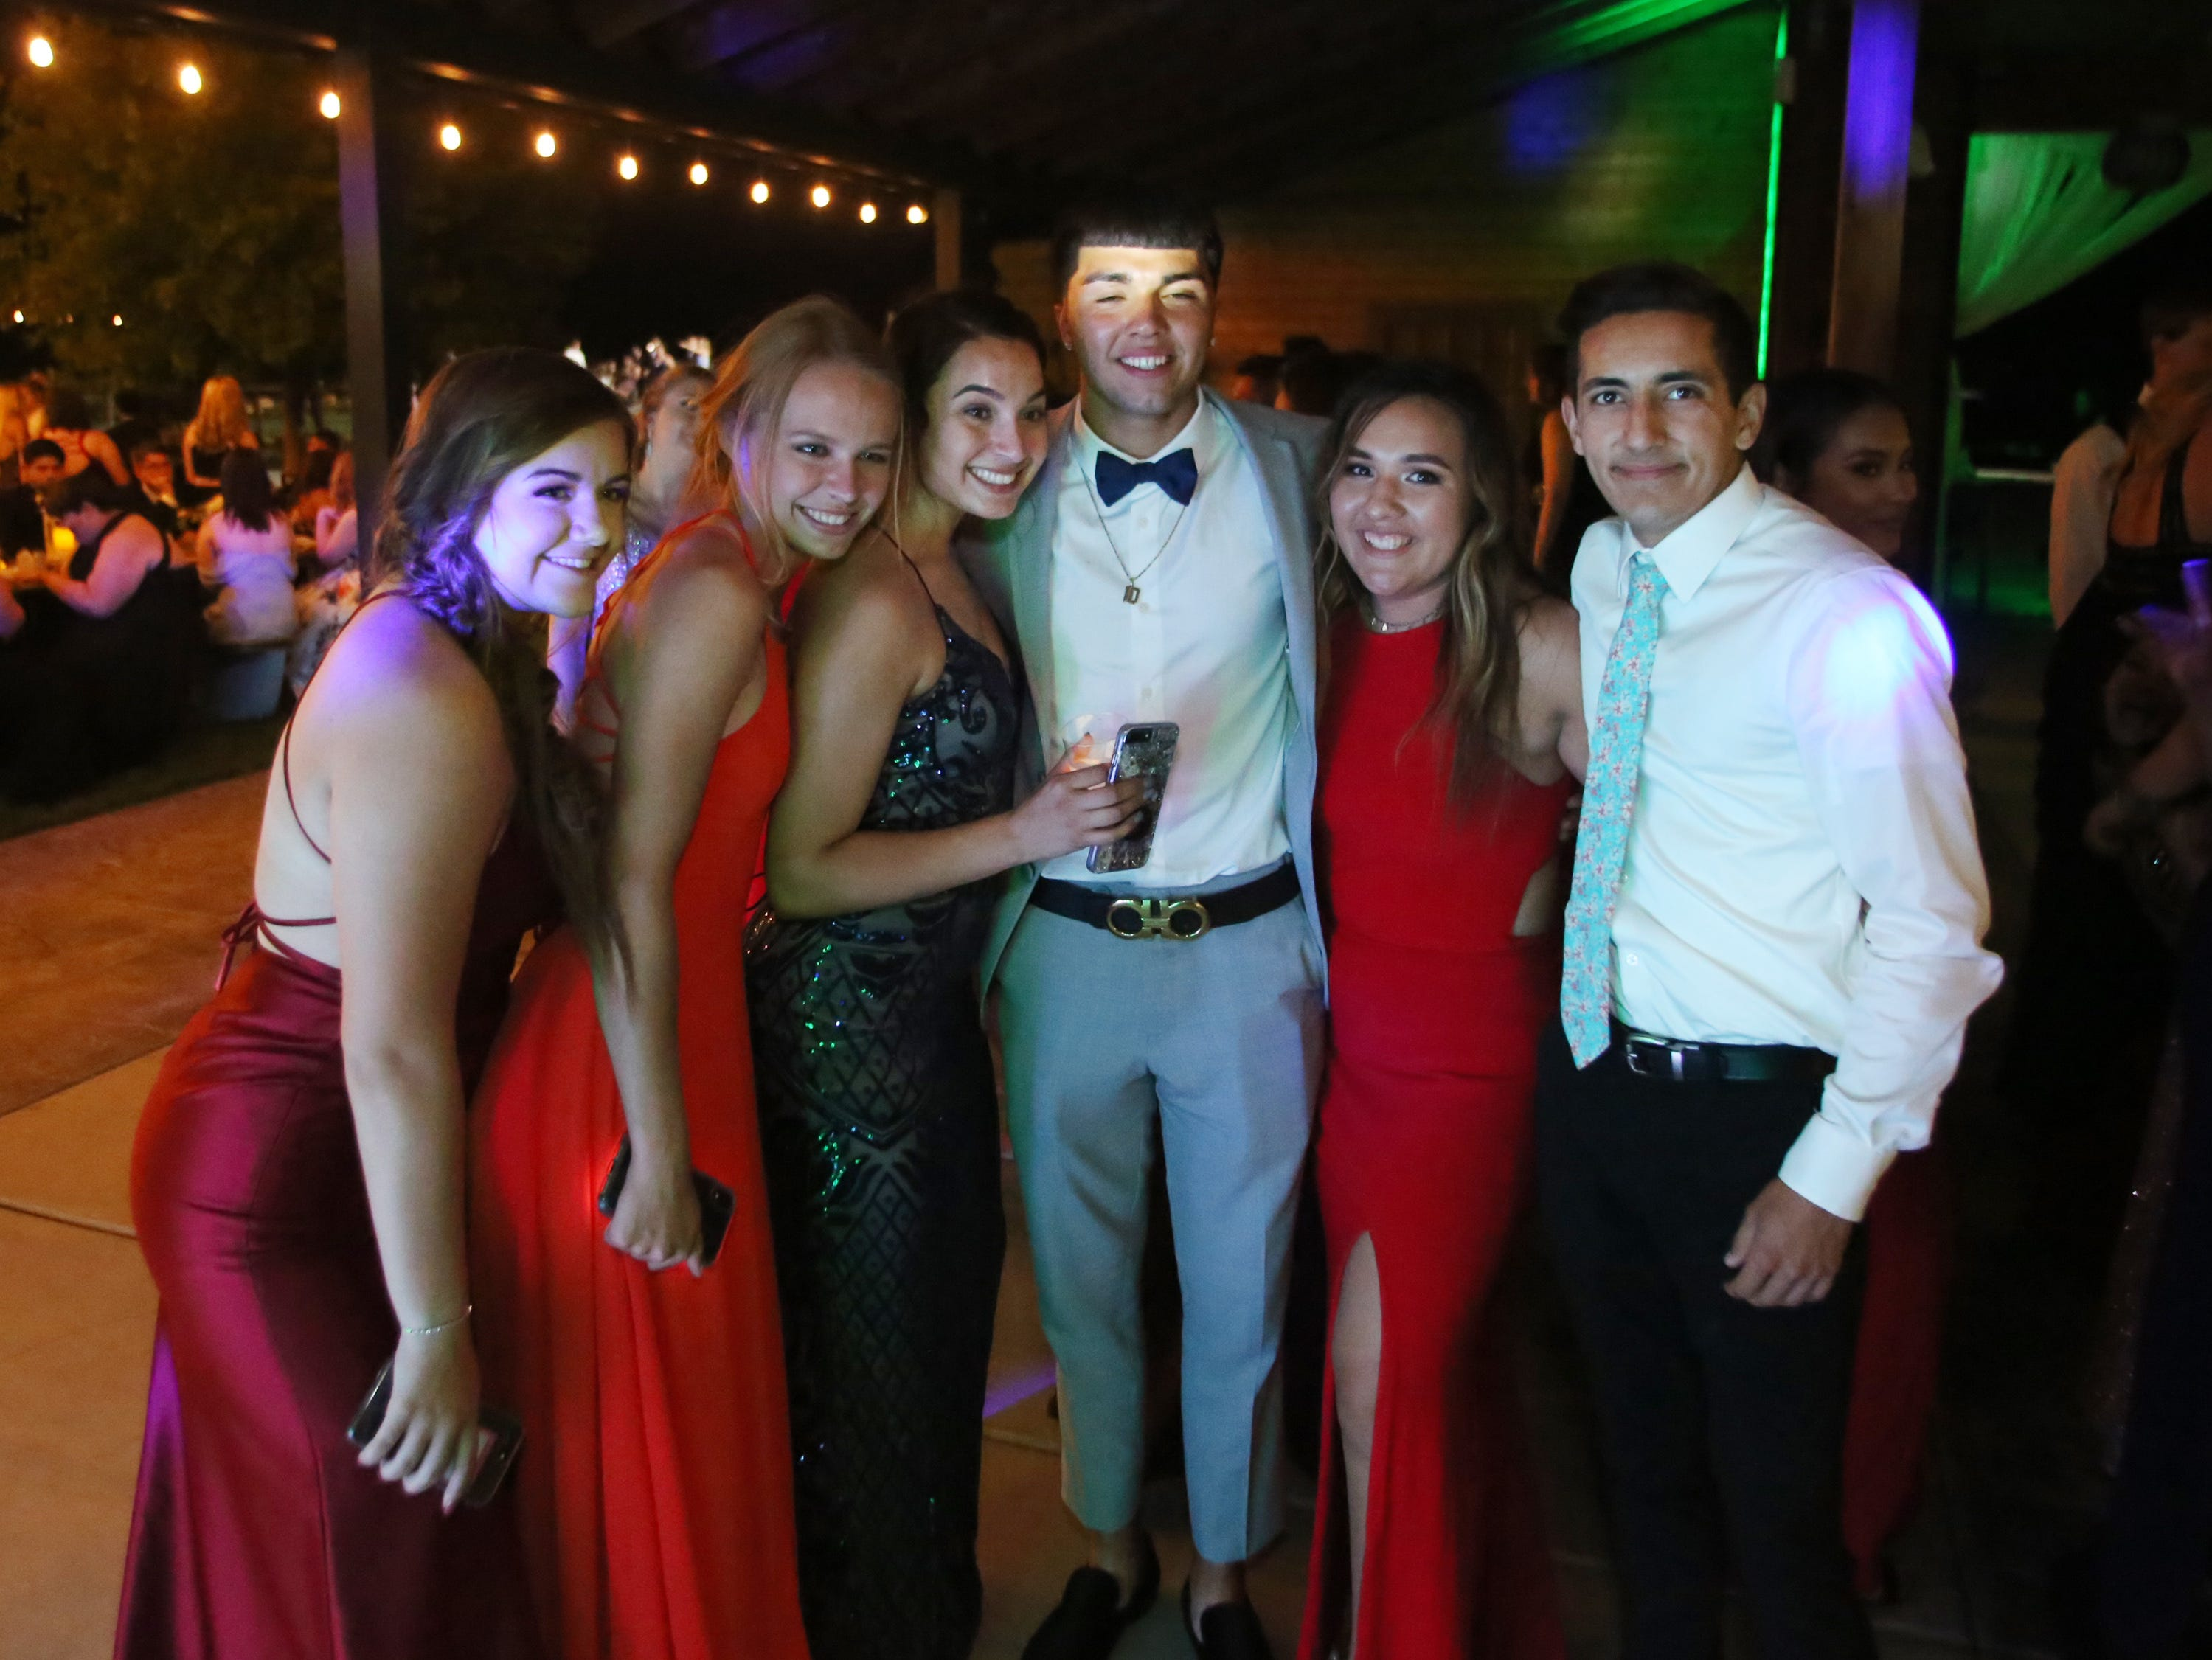 From left to right, Alexis Gregory, Mattie Fry, Jill Nelson, Jsiah Martinez and Lexe Cortez are shown at the Exeter Union High School prom Saturday, May 4, 2019 in Woodlake, Calif.